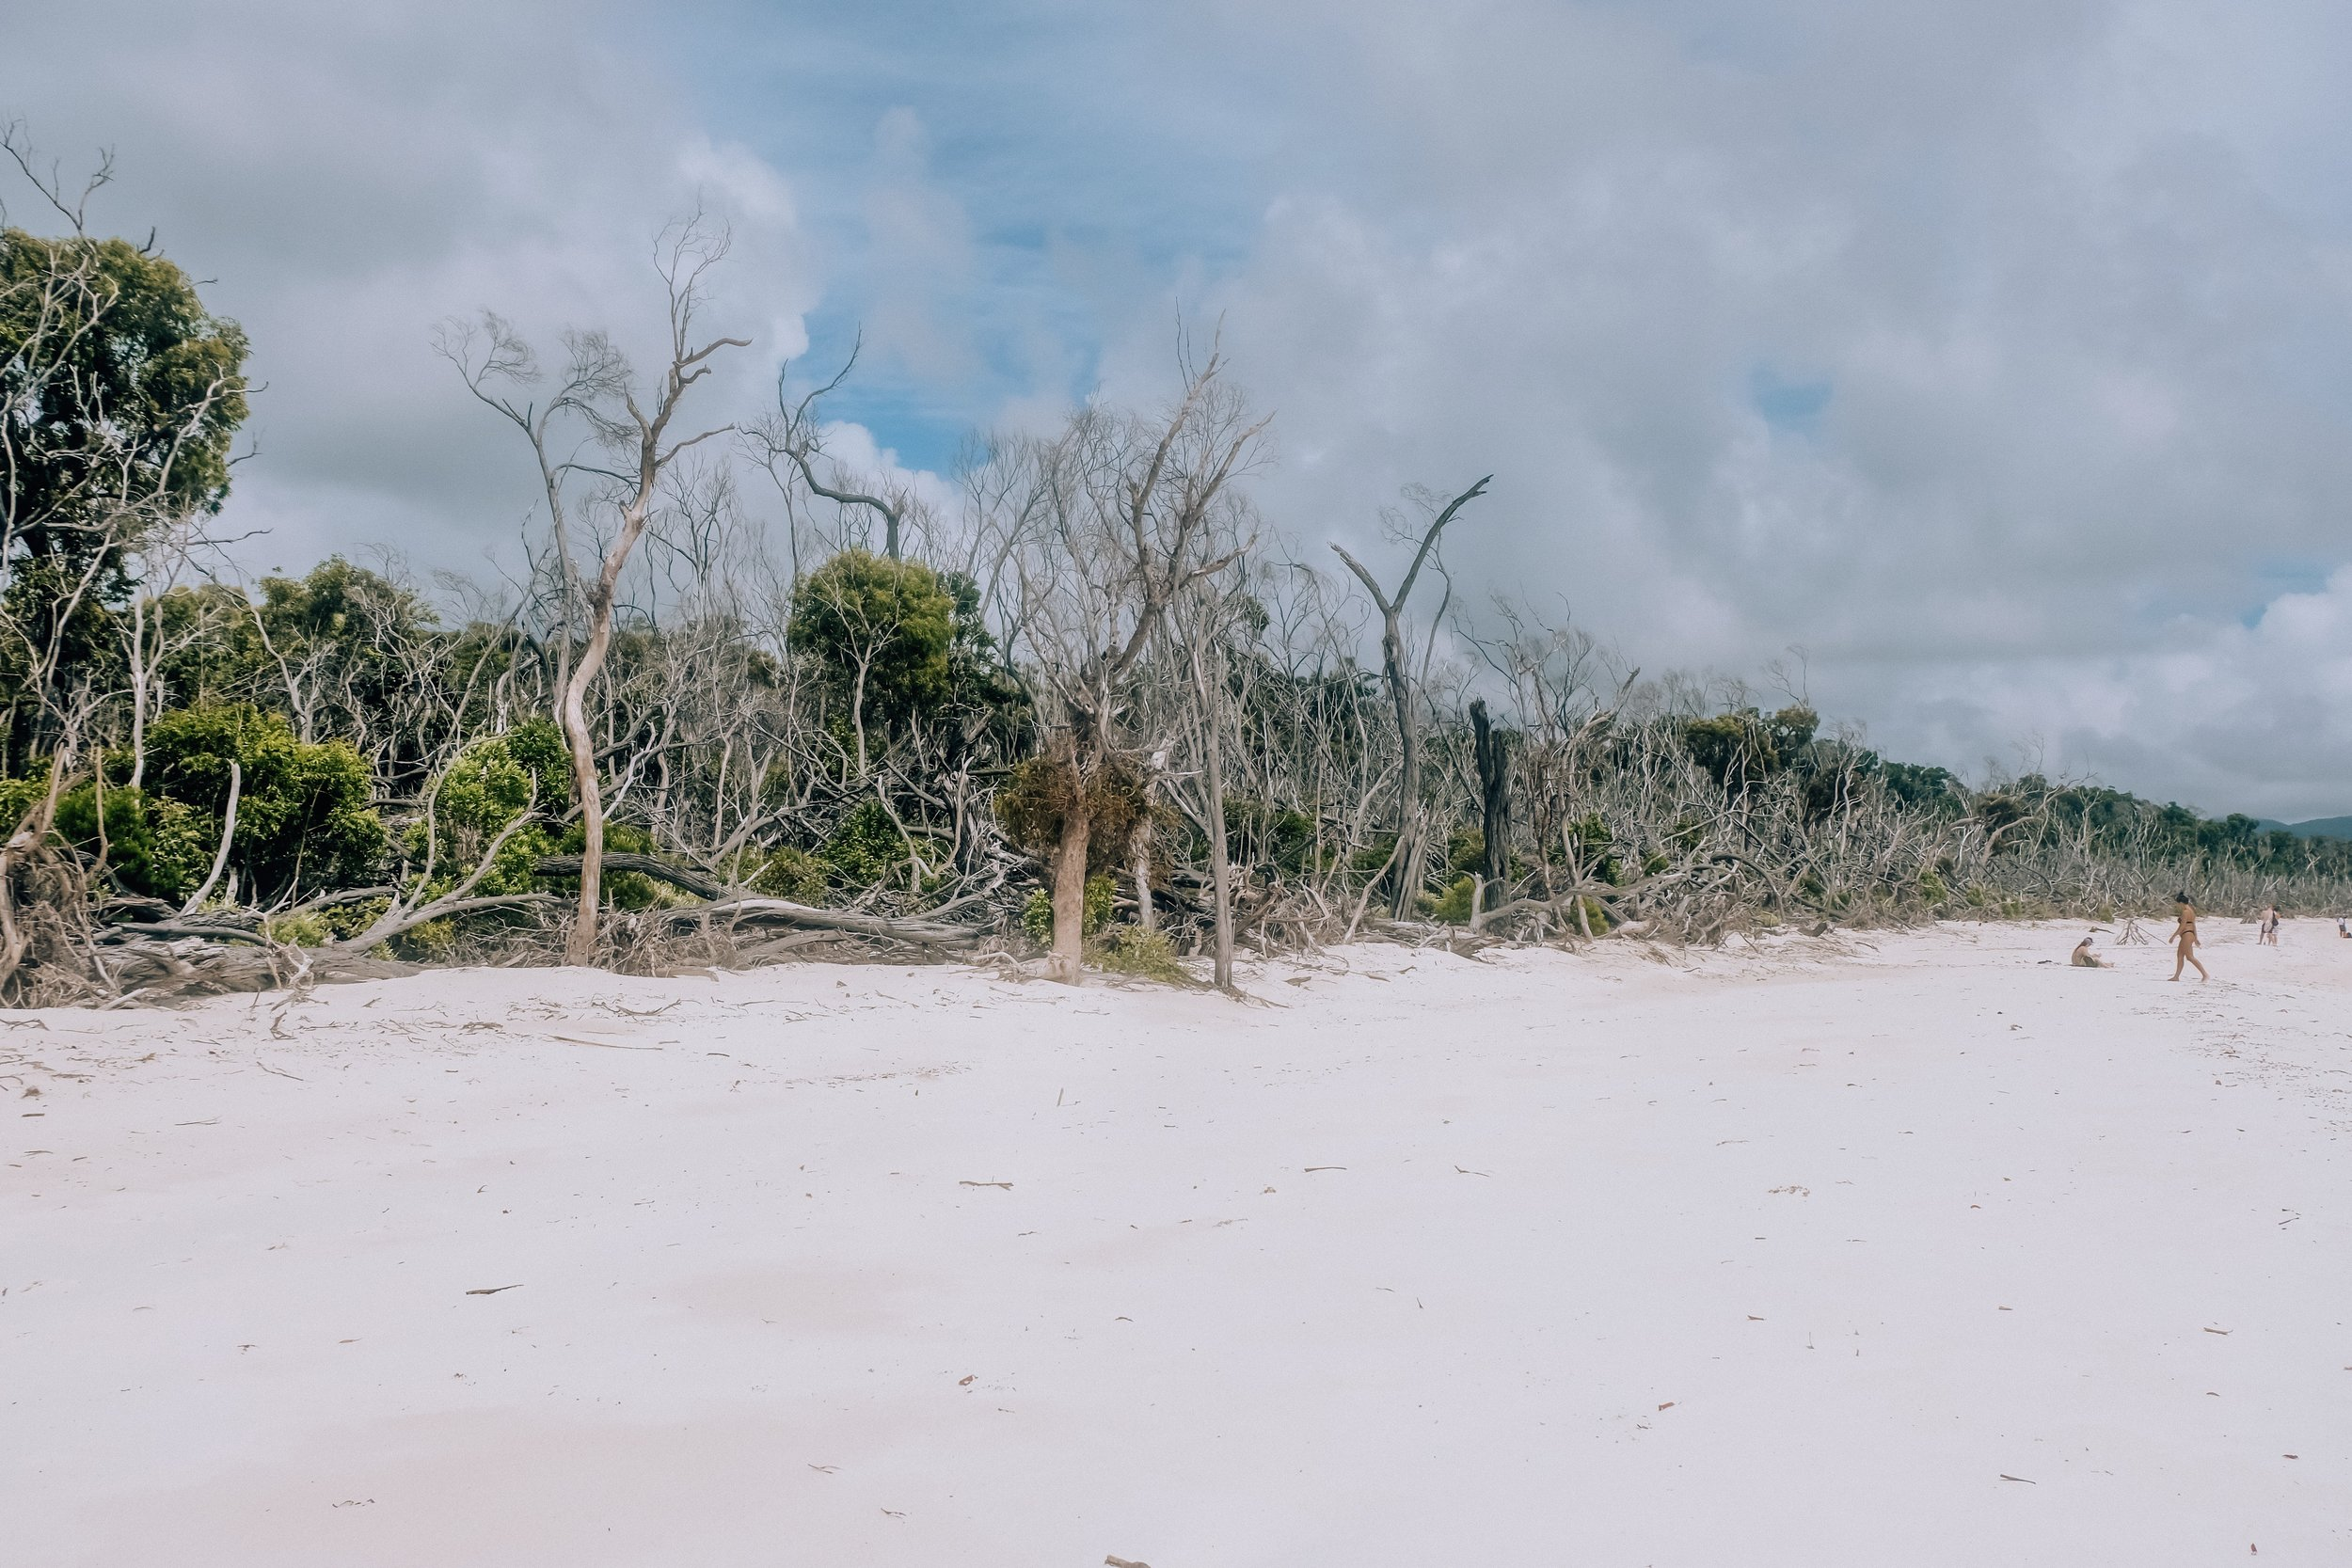 Cyclone damage to Whitsunday Island in March 2017, all the trees look like this on this part of the island